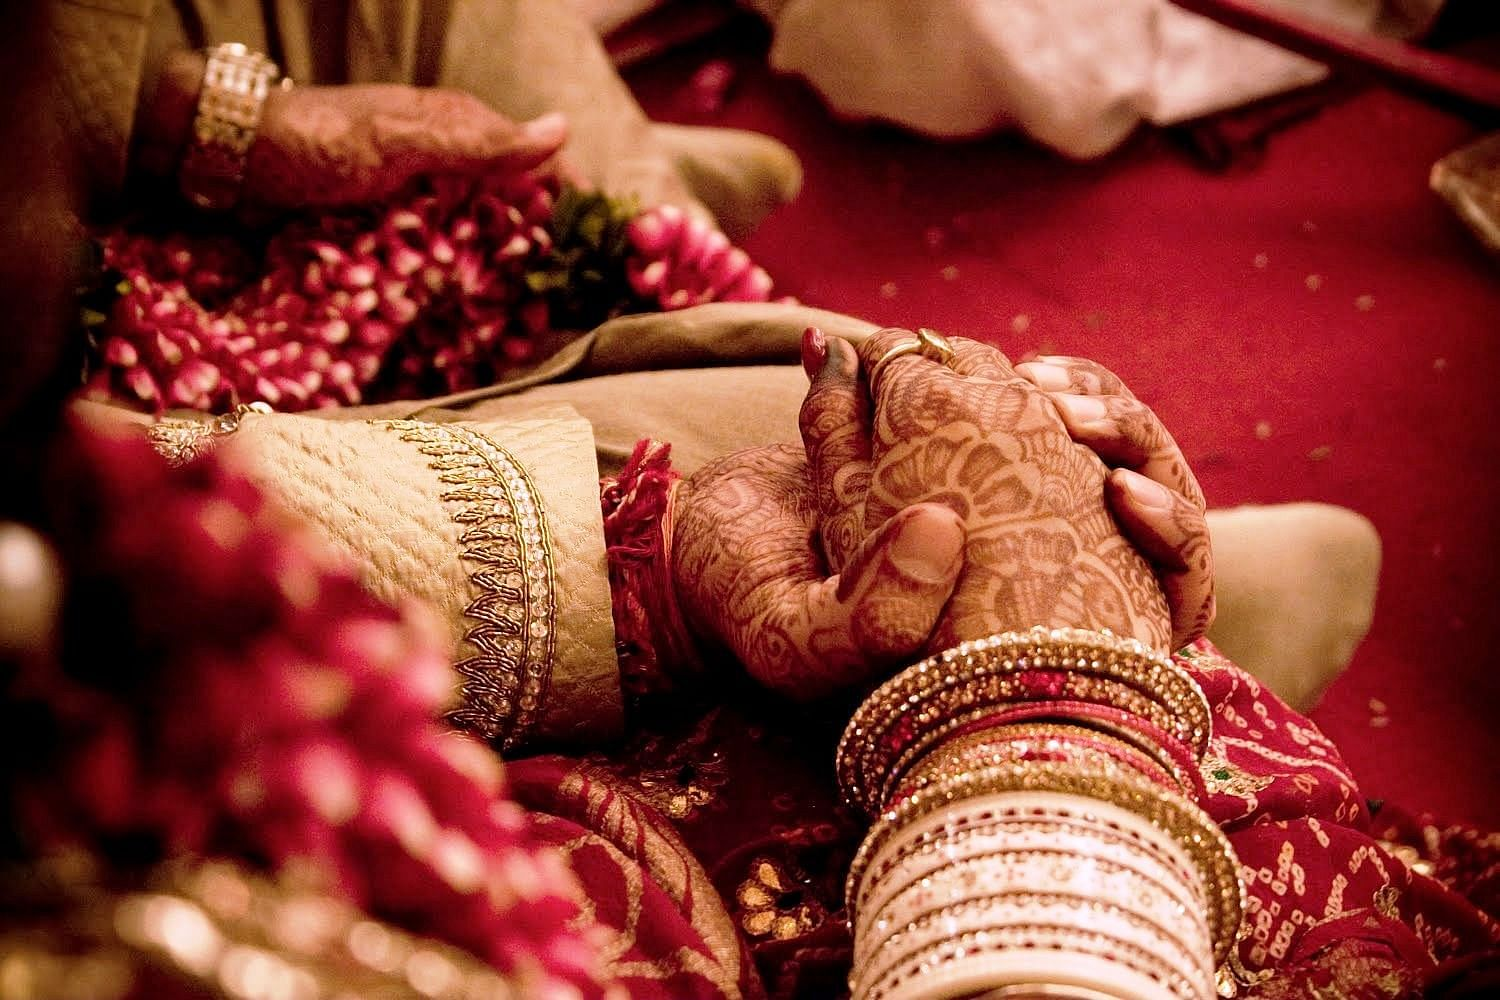 Even though the issue of safety of women has taken centre stage in India, debates around whether marital rape should be punishable are still doing the rounds.